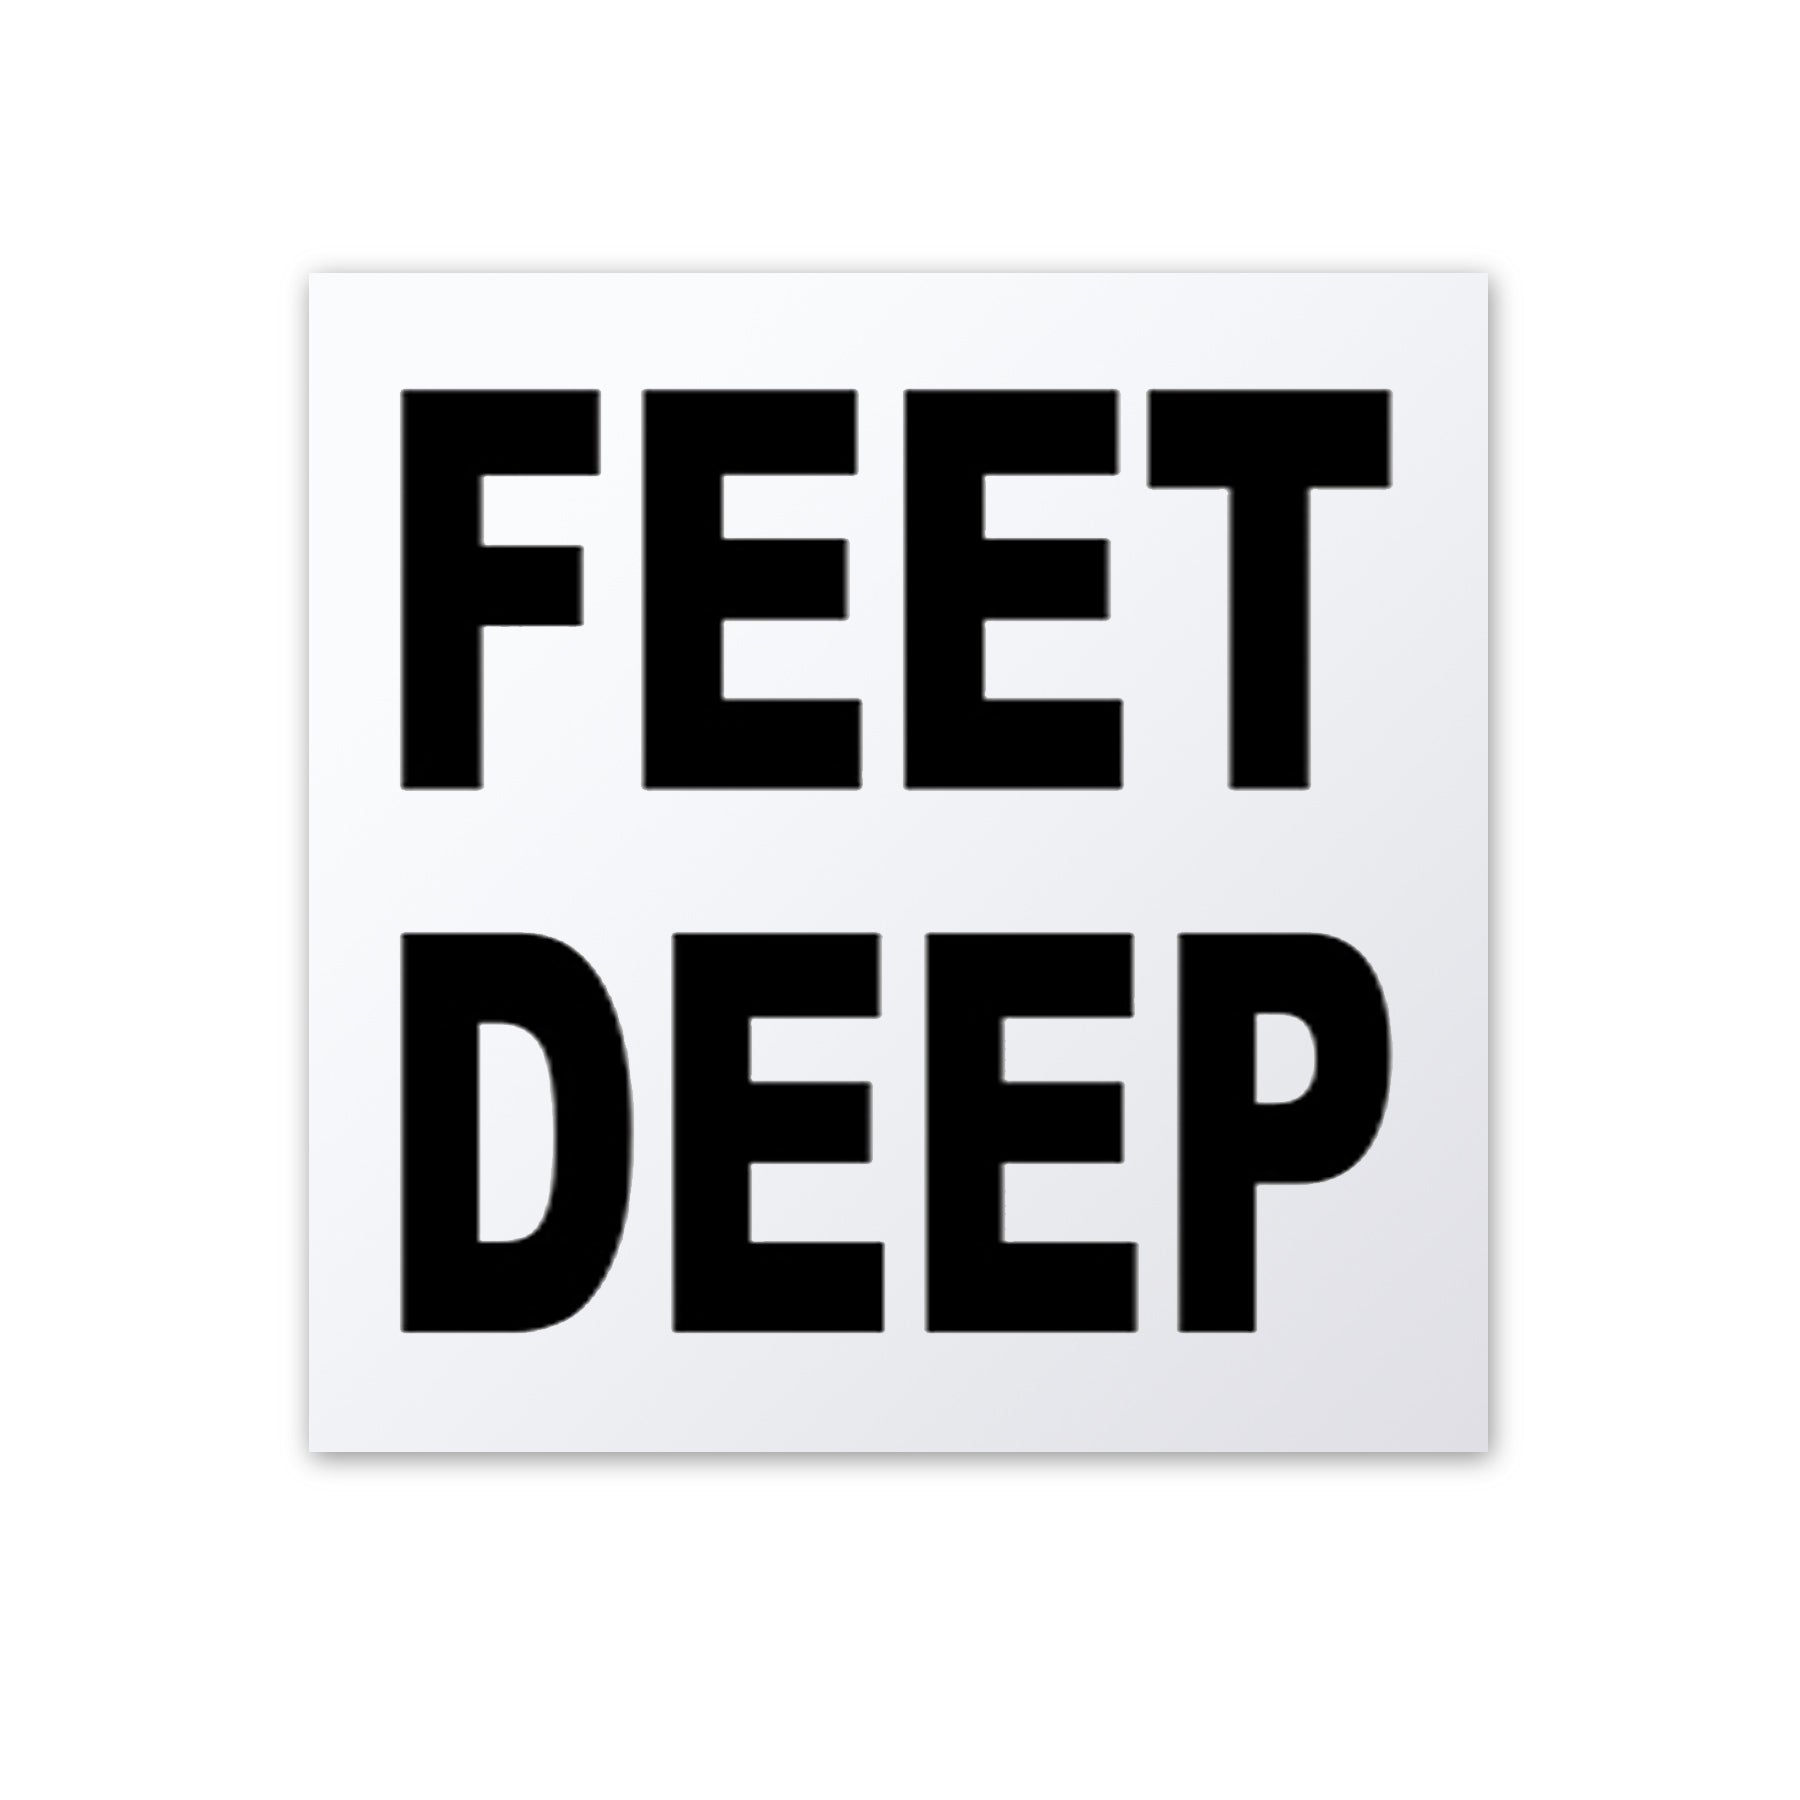 "Ceramic Swimming Pool Depth Marker ""Feet Deep"" Smooth Finish 5 Inch Font"